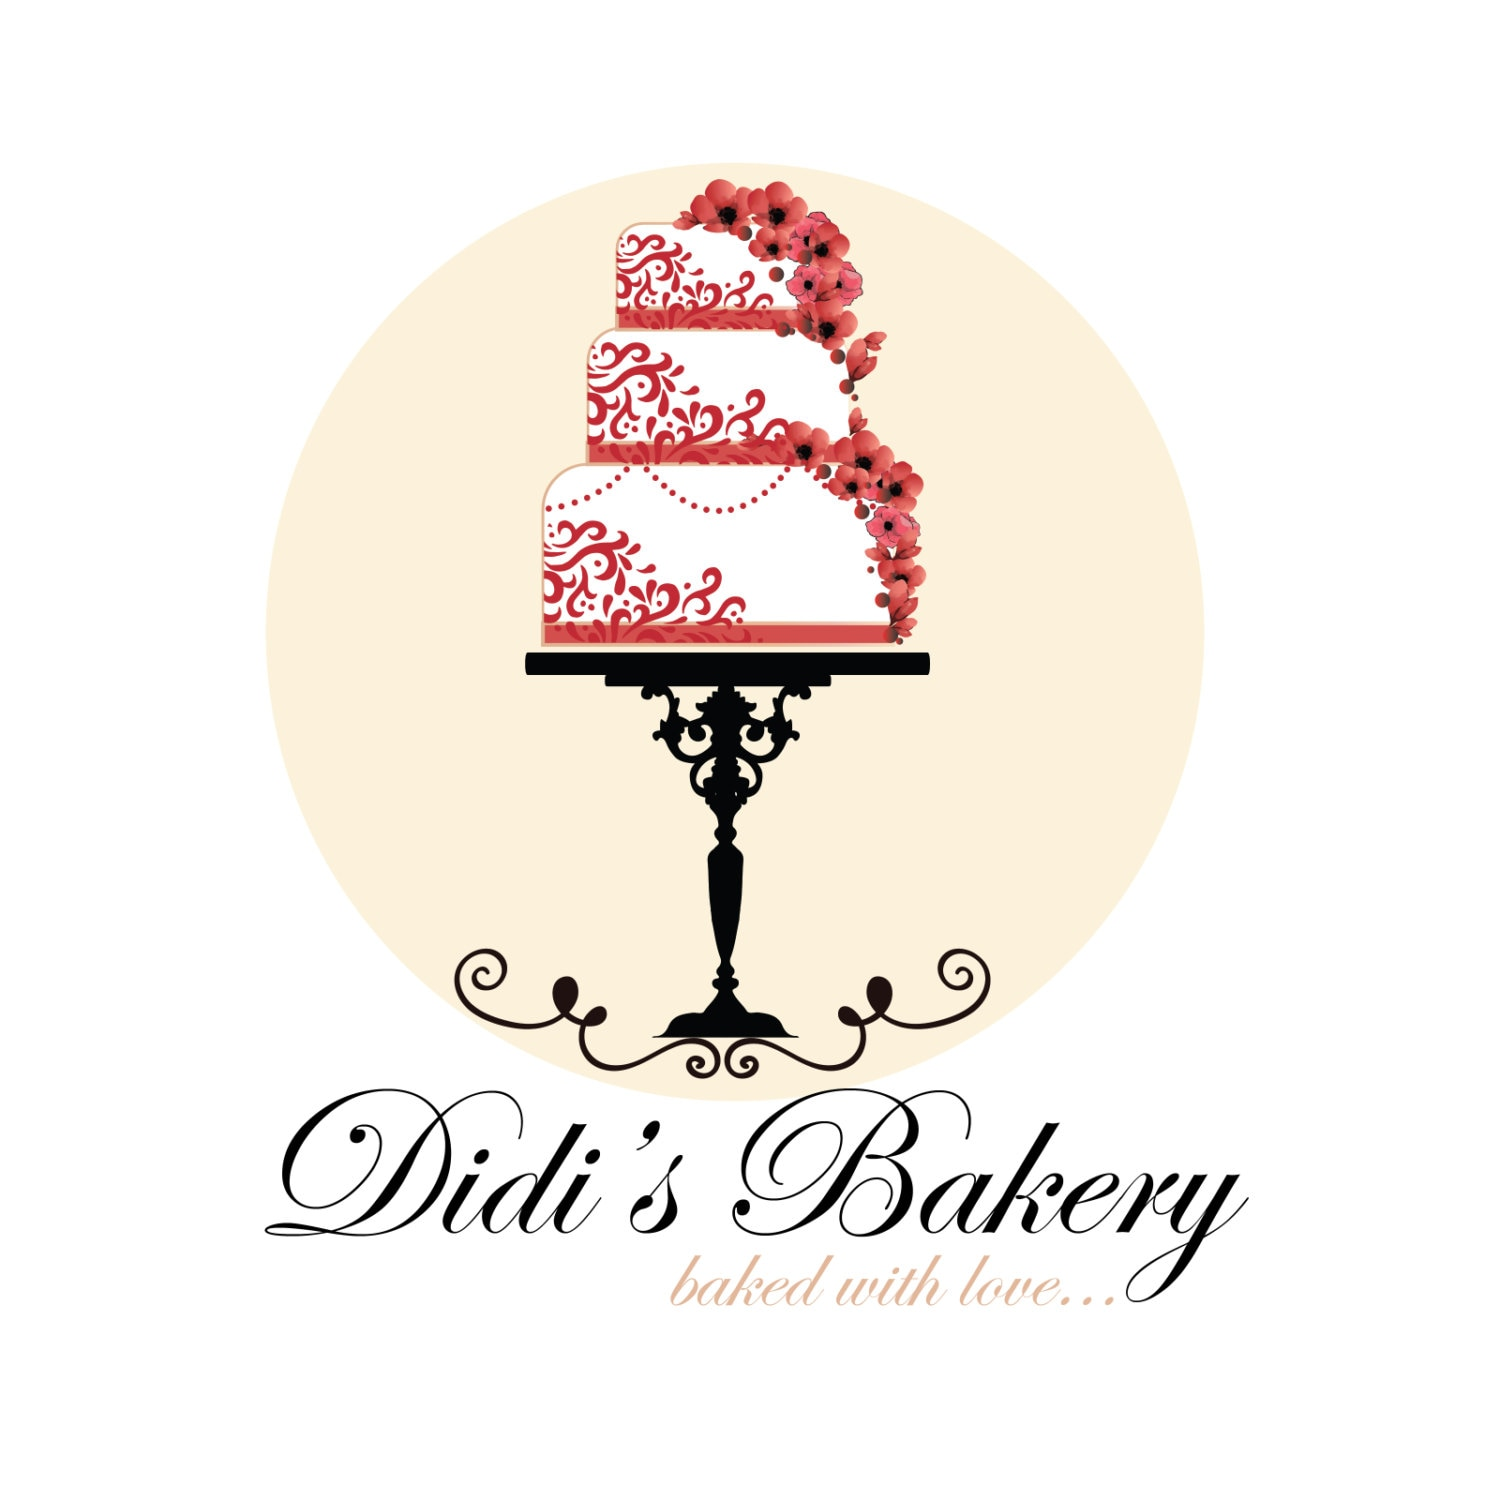 custom logo design premade bakery logo red flowers cake logo